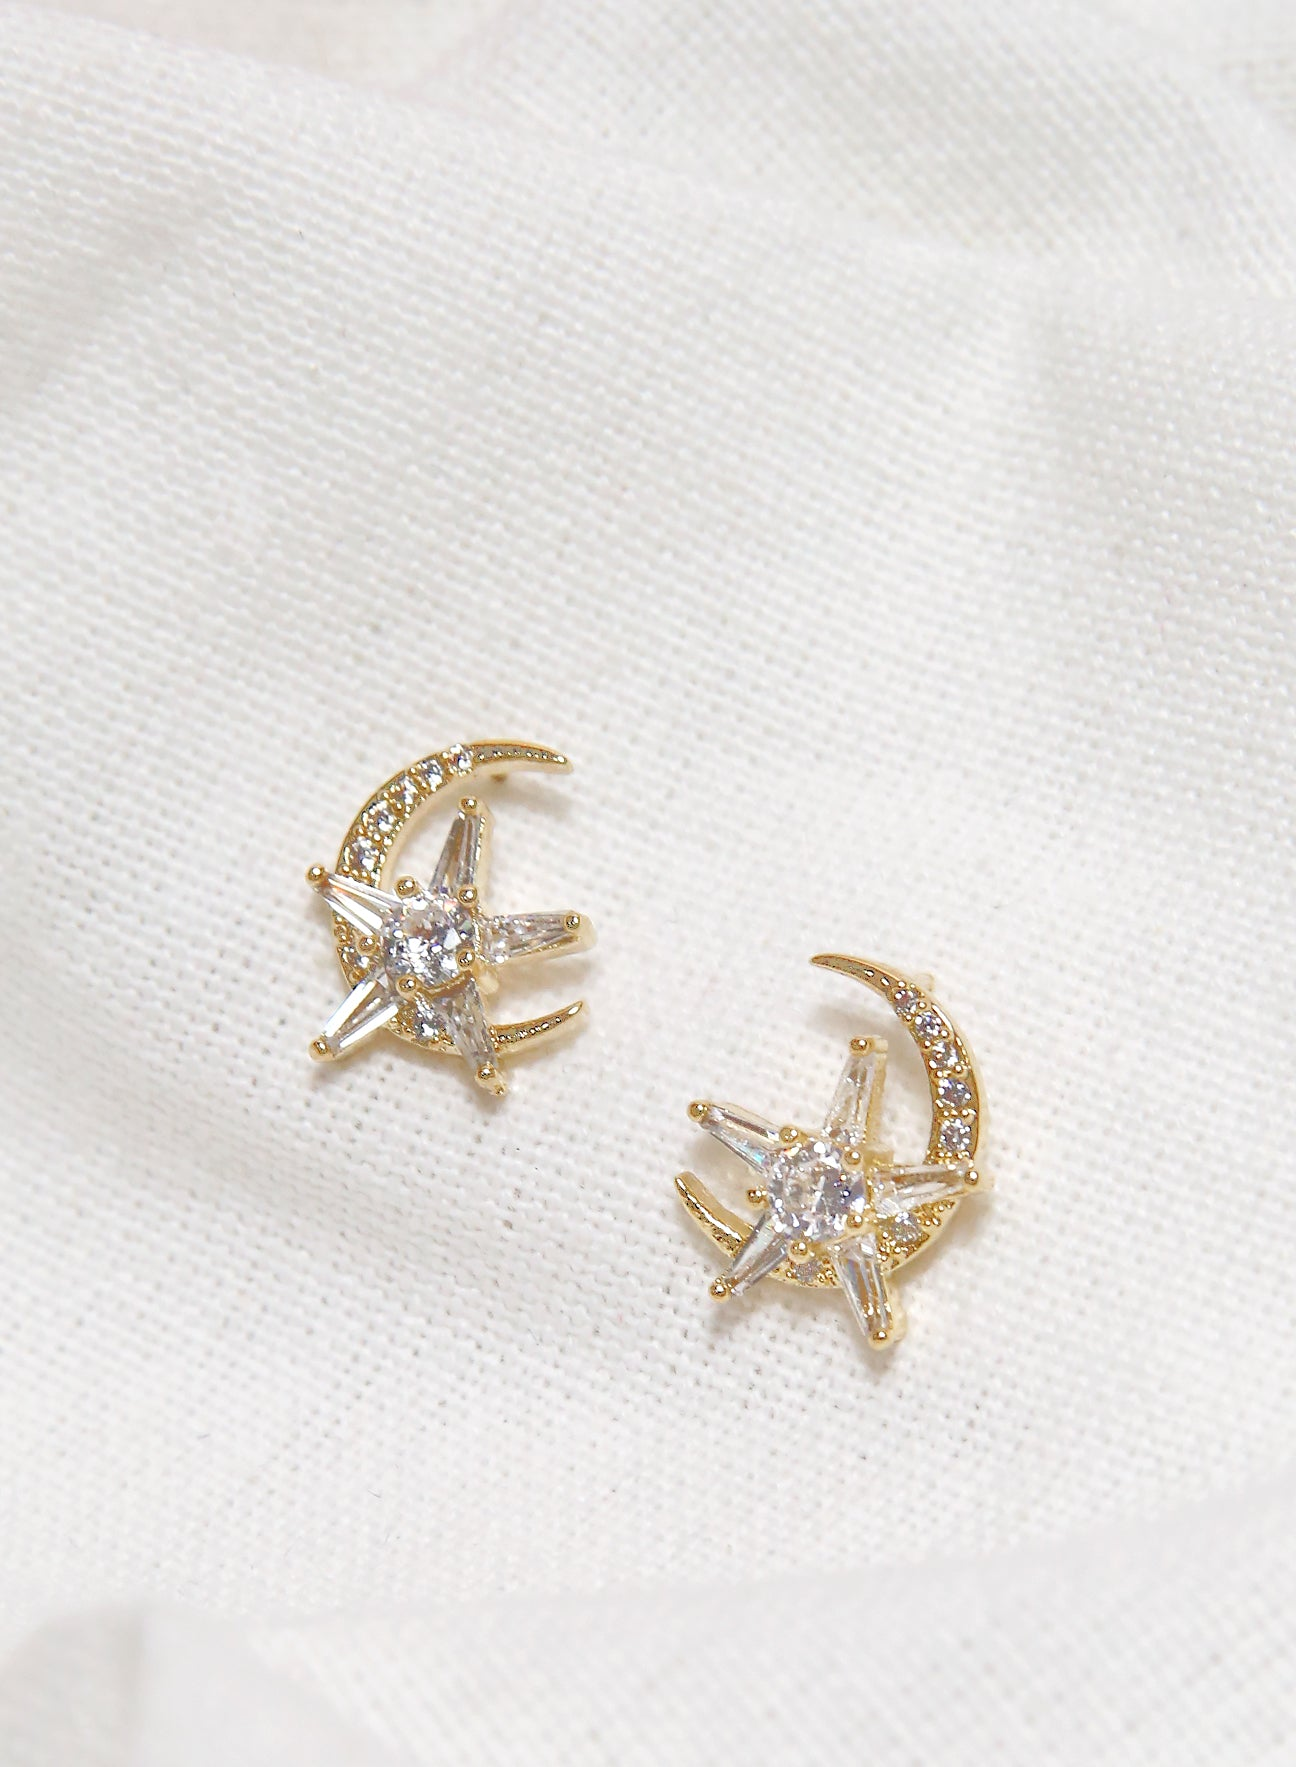 Luna Estrella Earrings